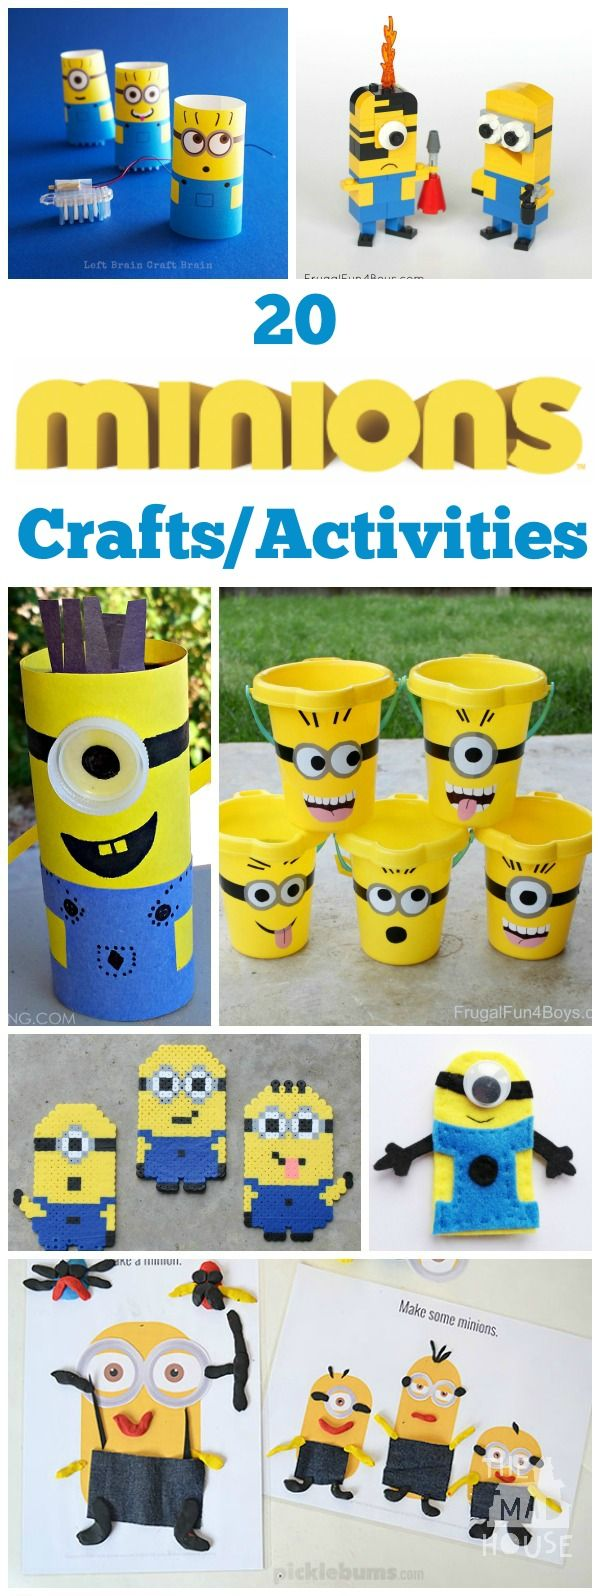 20 Minions crafts and activities for kids of all ages.  Join in the Minions craze with this selection of MInion Crafts, activities, food and free printables.  There is something to keep any child occupied here.